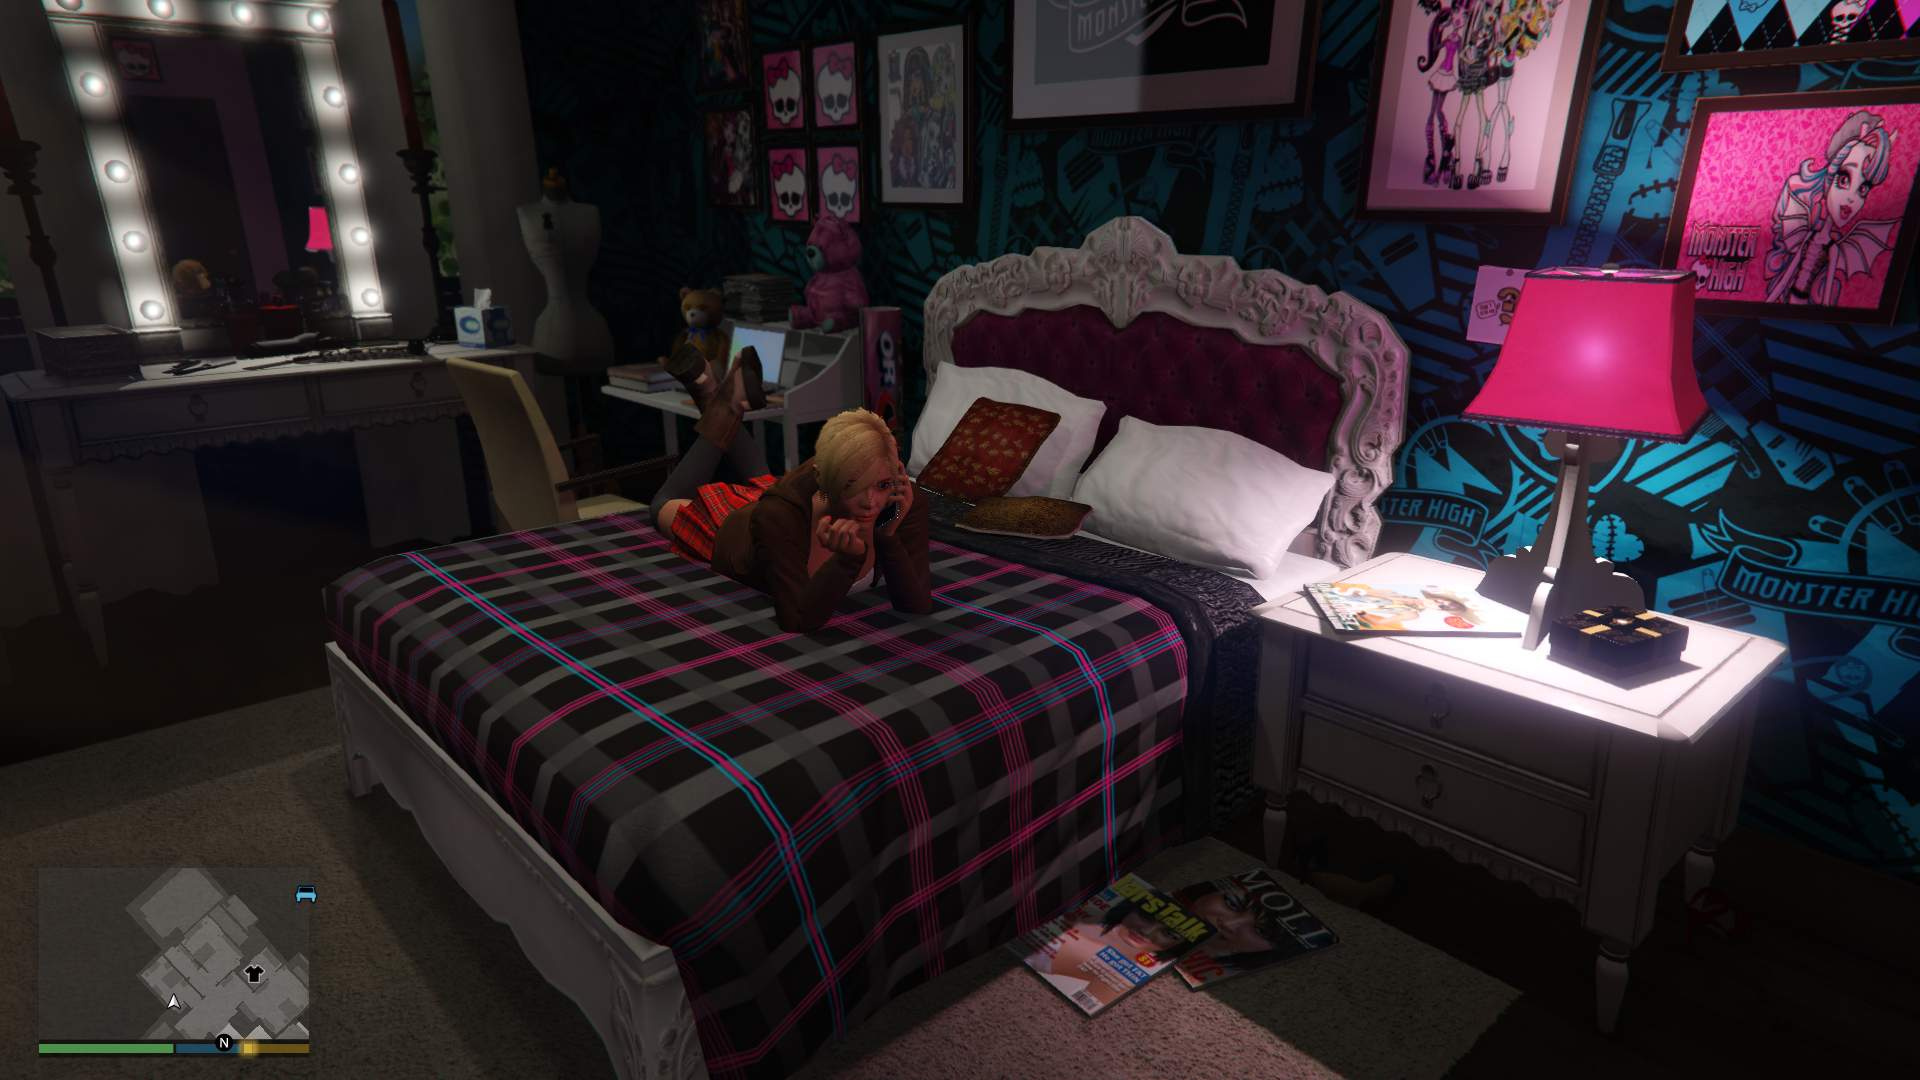 Monster high decoration and new bed for tracey 39 s room art for michael 39 s gta5 - Deco chambre monster high ...